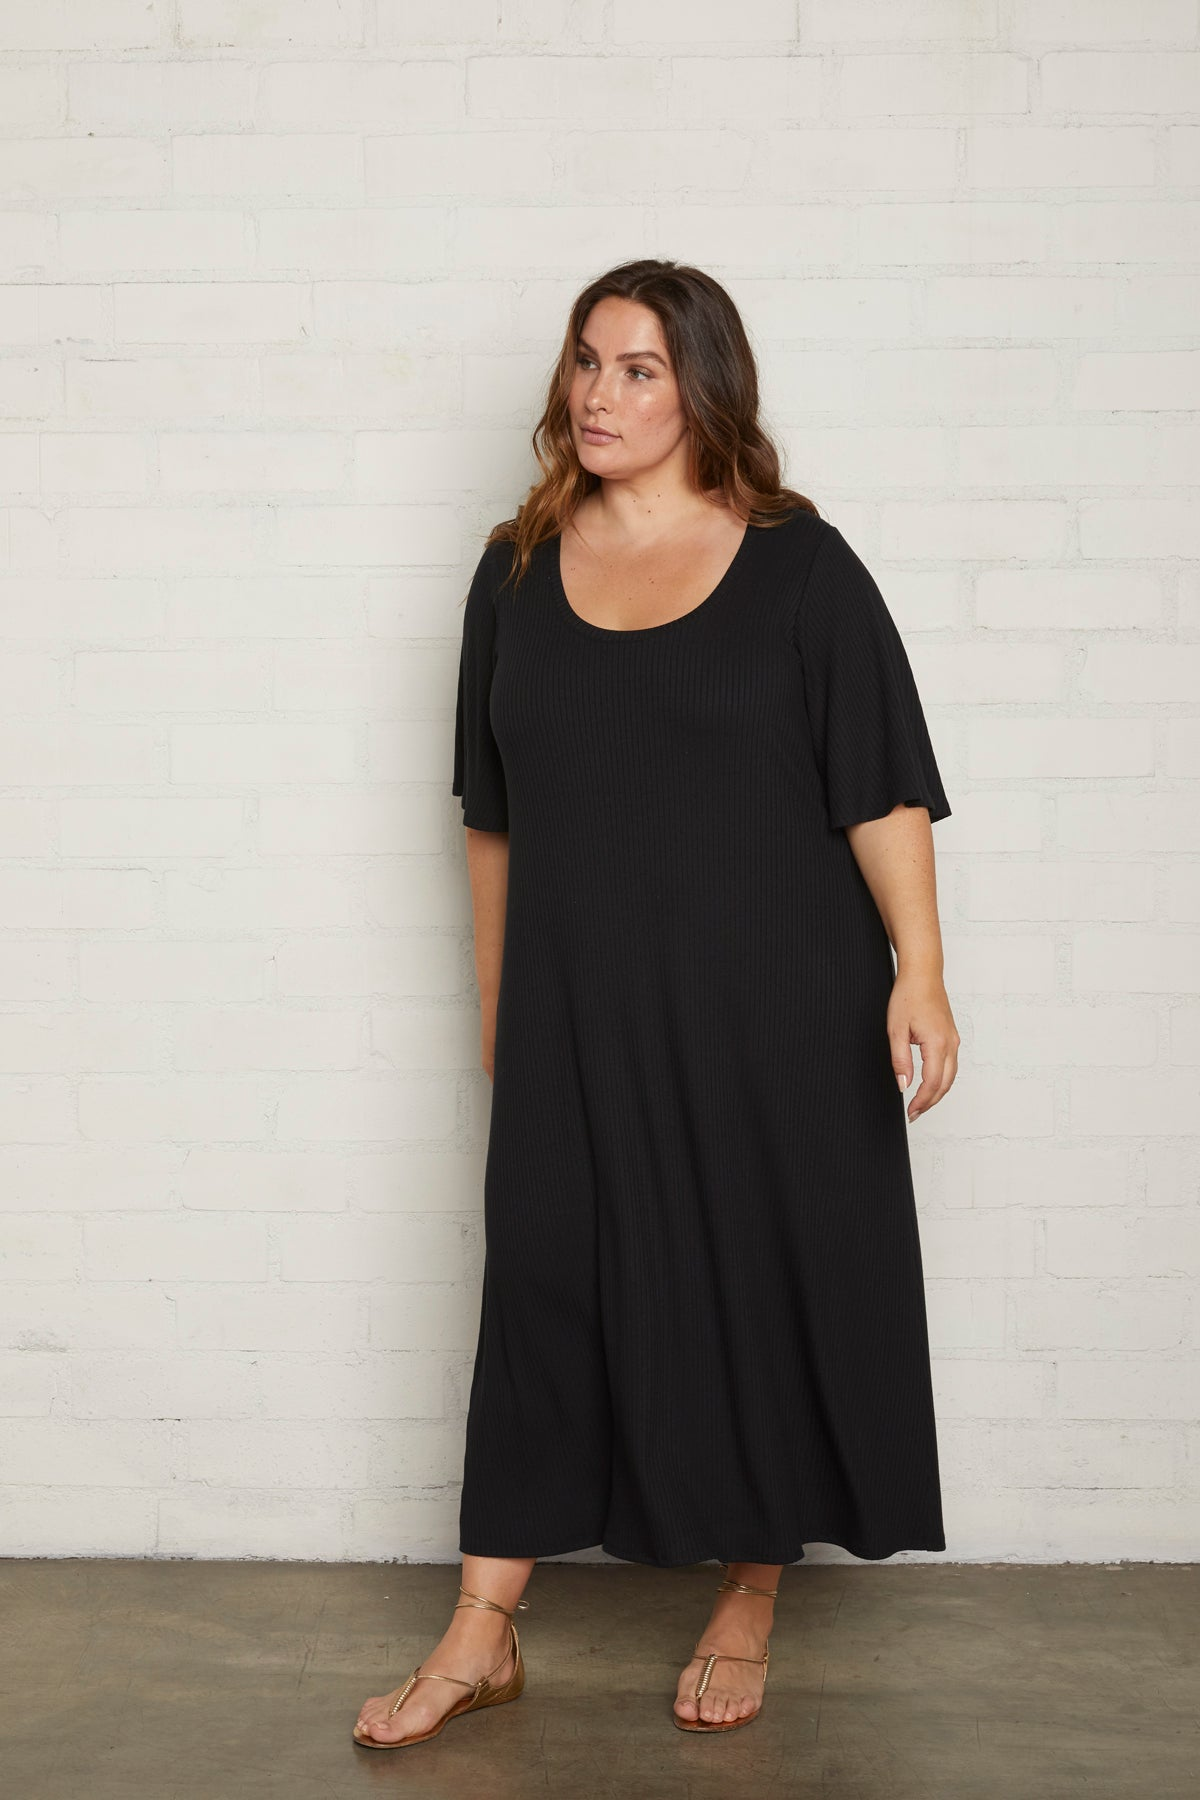 Rib Felice Dress - Black, Plus Size